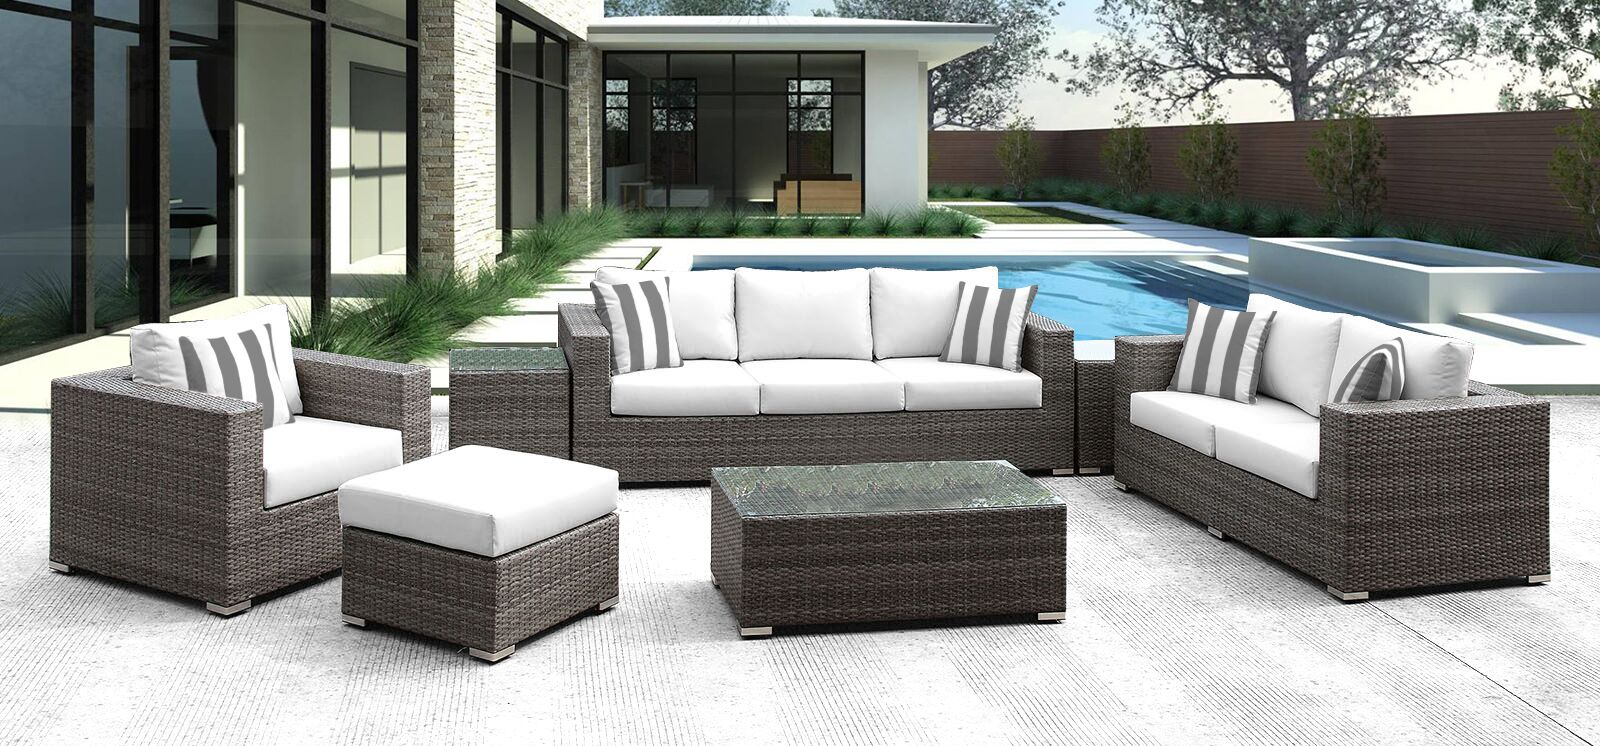 Roslindale 7 Piece Rattan Sofa Set with Cushions Color: White with Gray/White Stripe